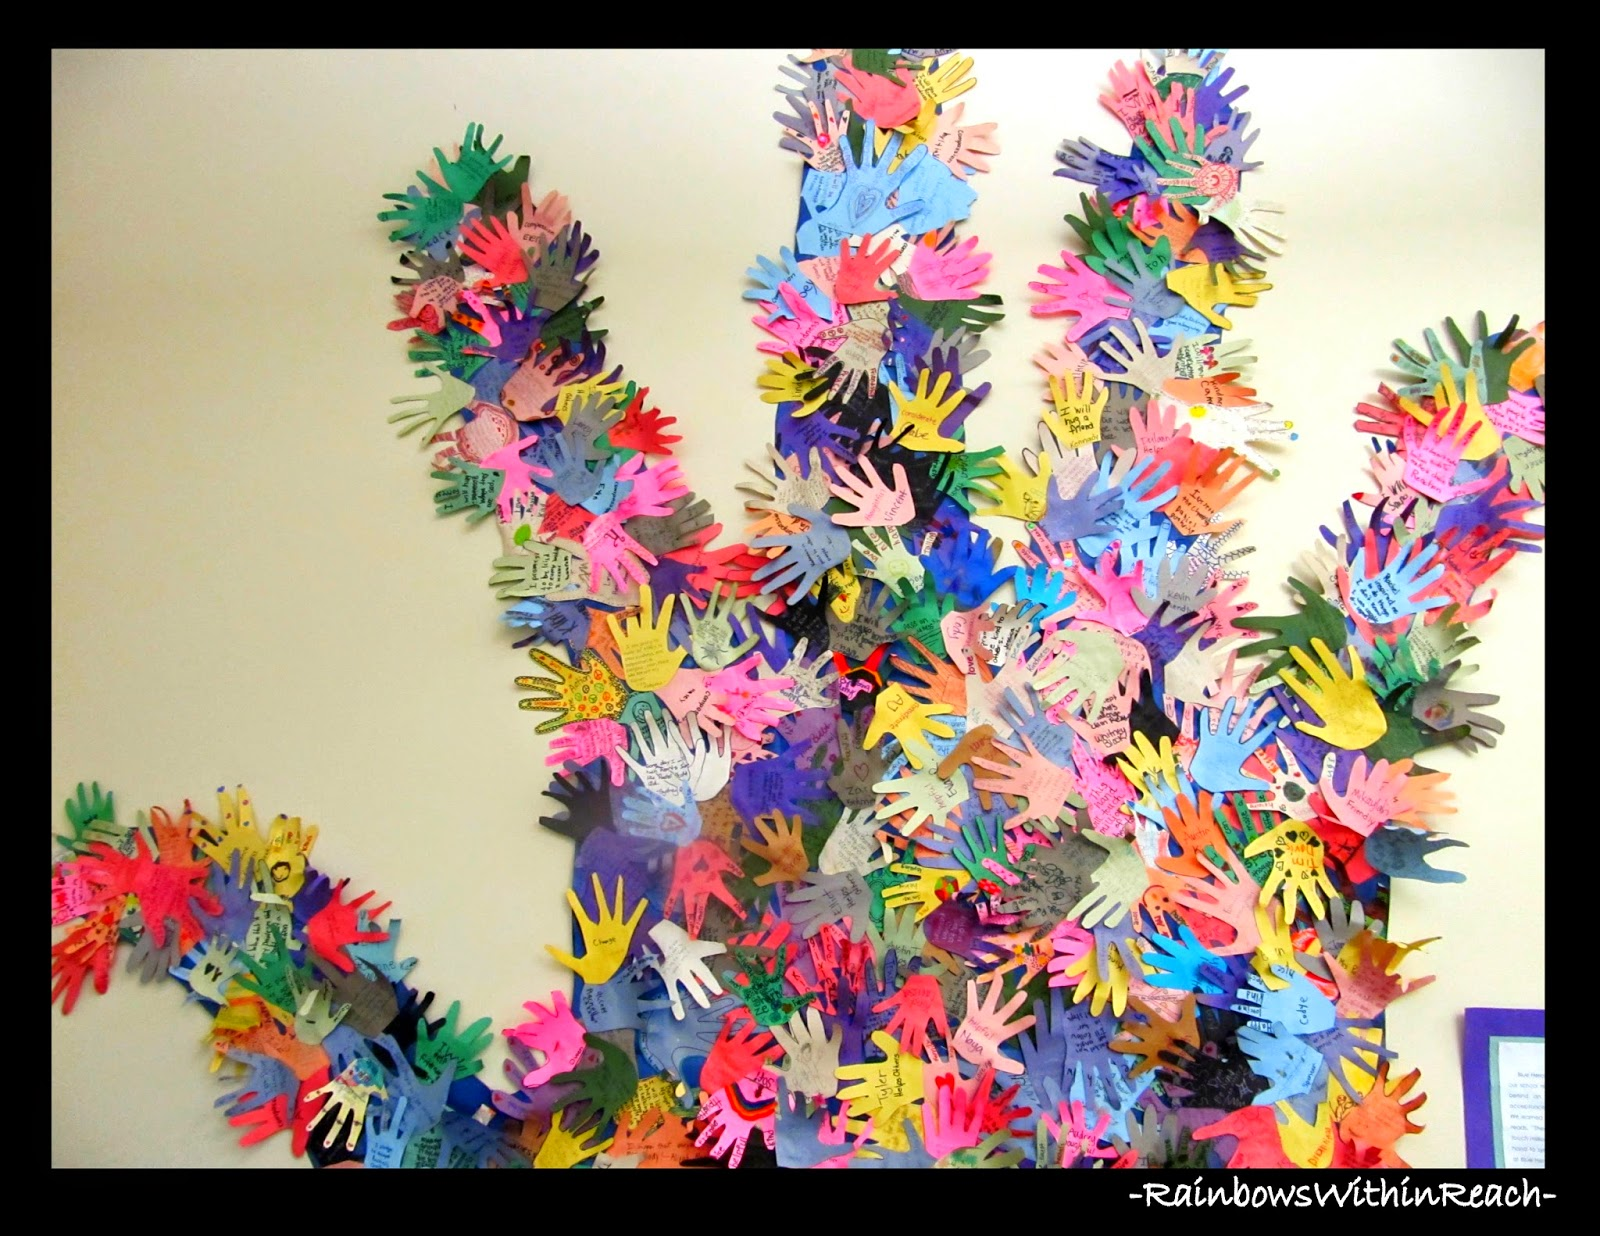 Classroom Door of Individual Decorated Hands via RainbowsWithinReach